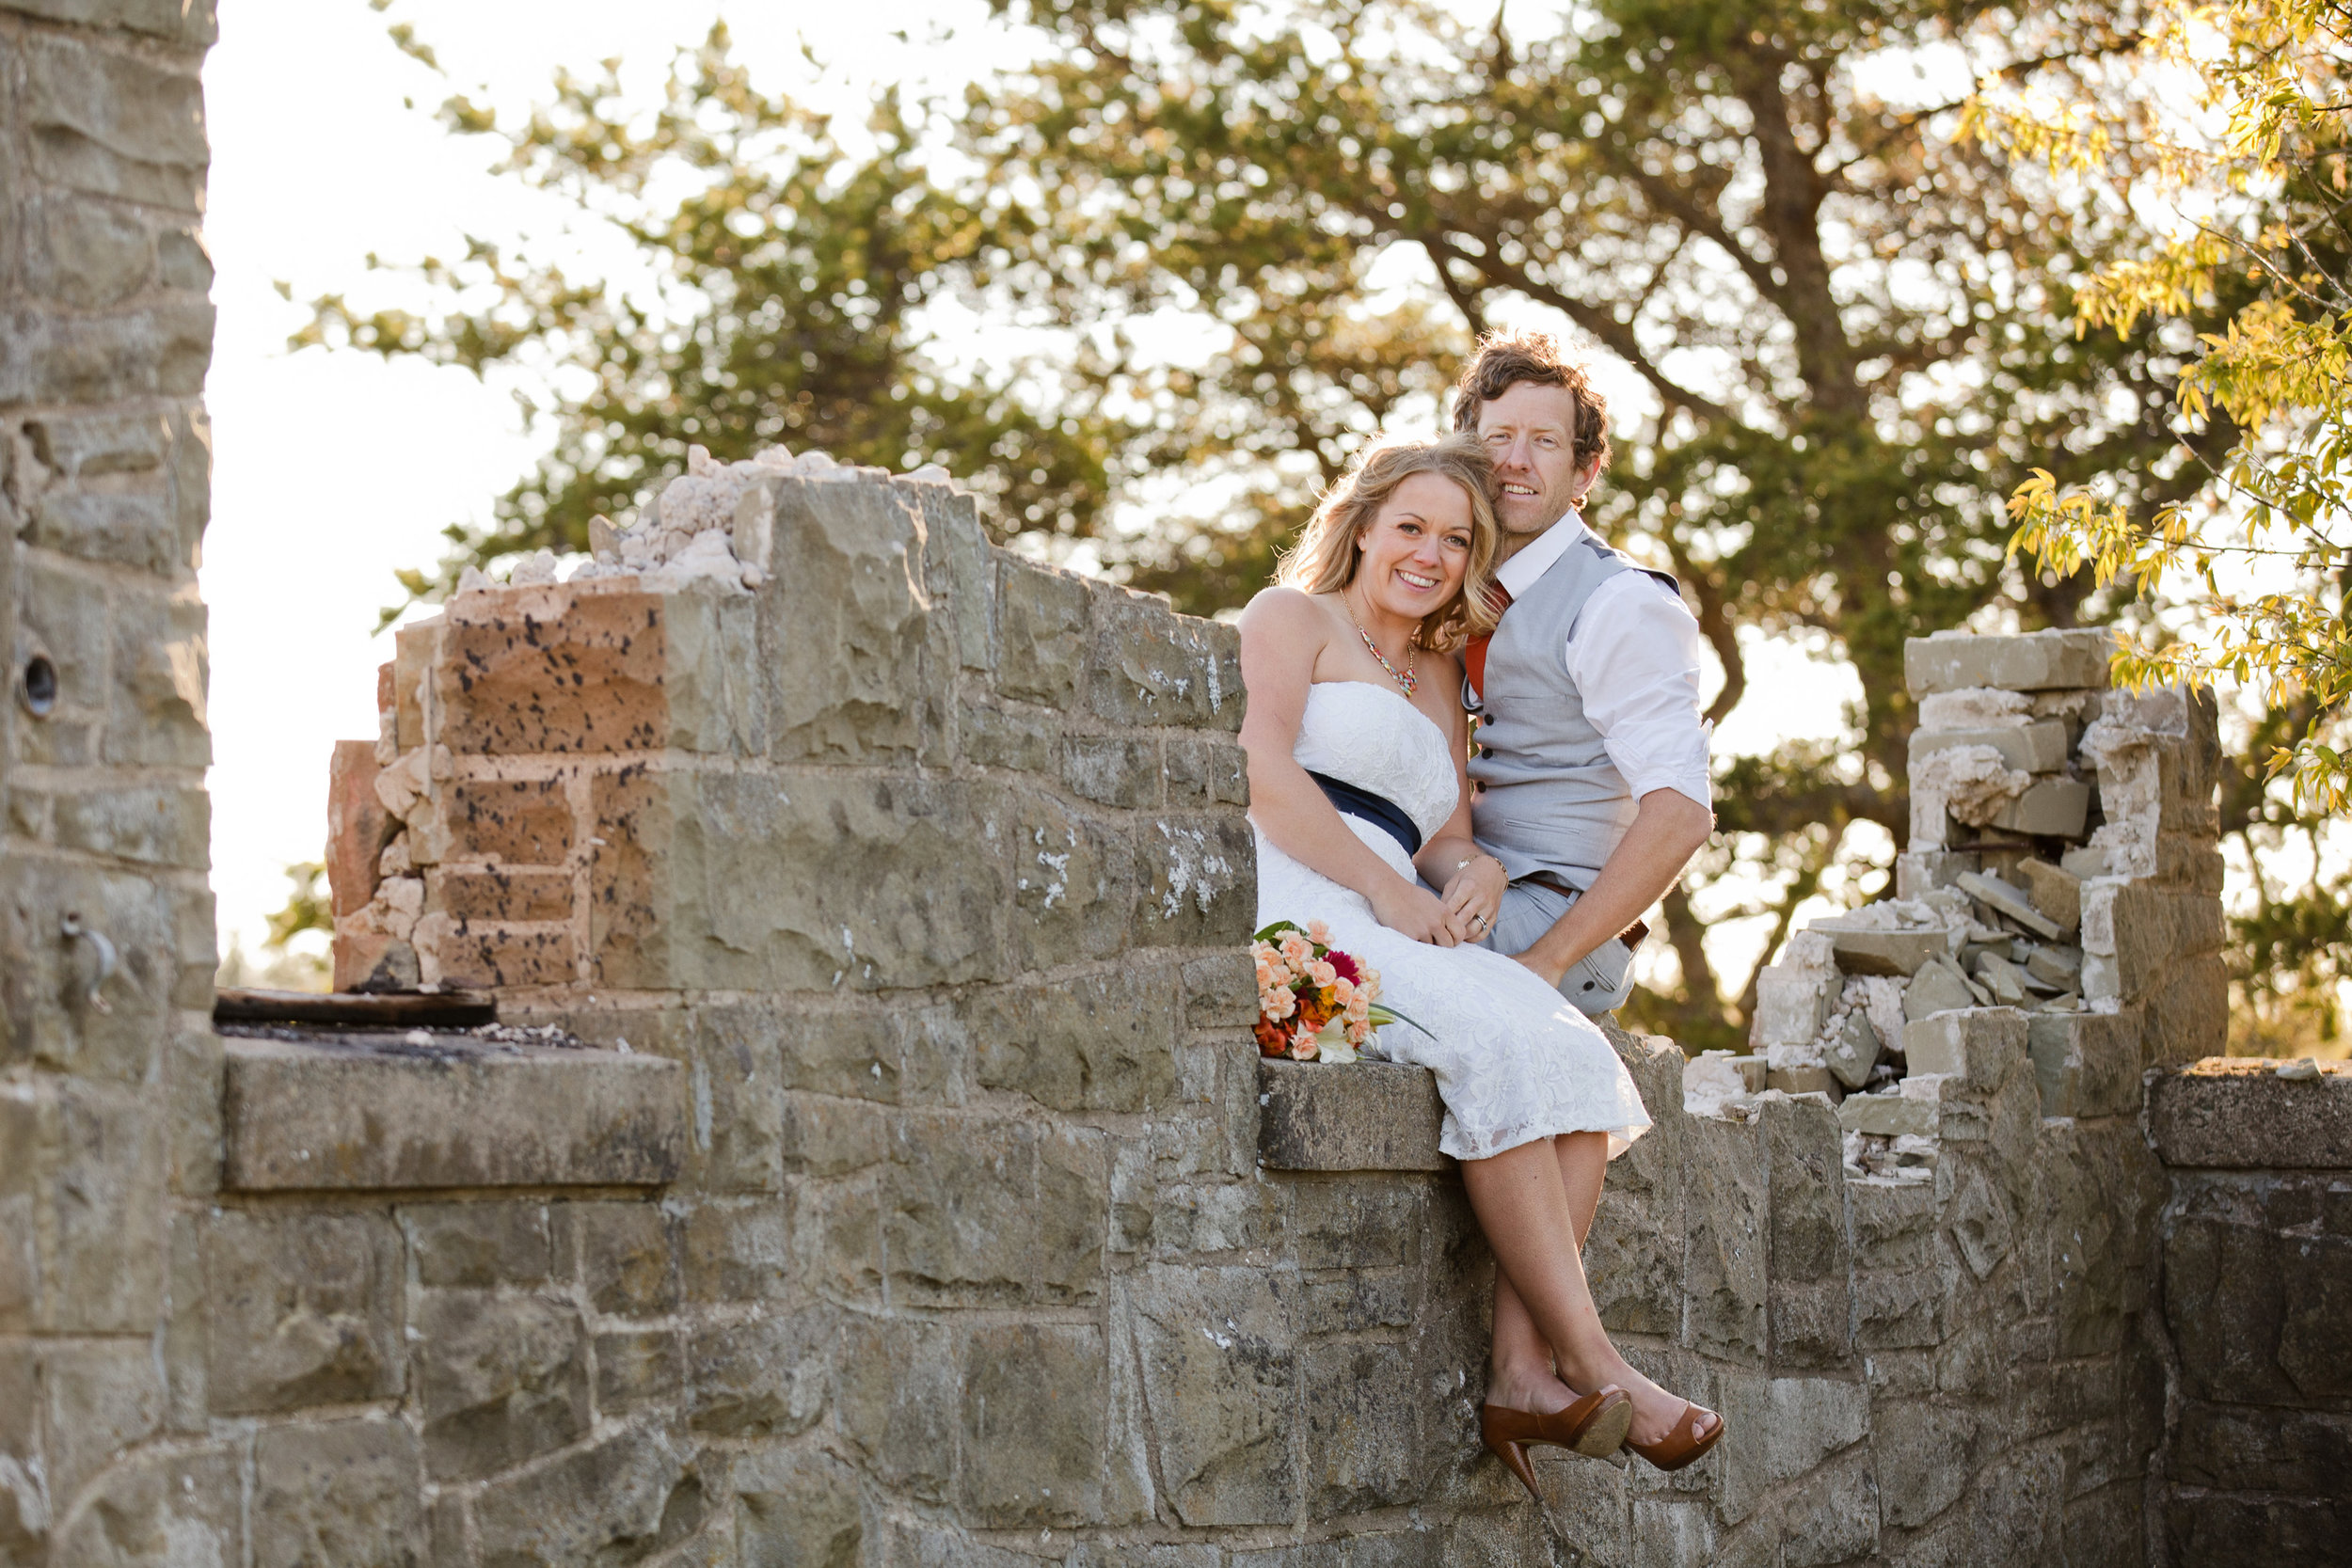 moncton_wedding_photographer_caro_photo-33.jpg